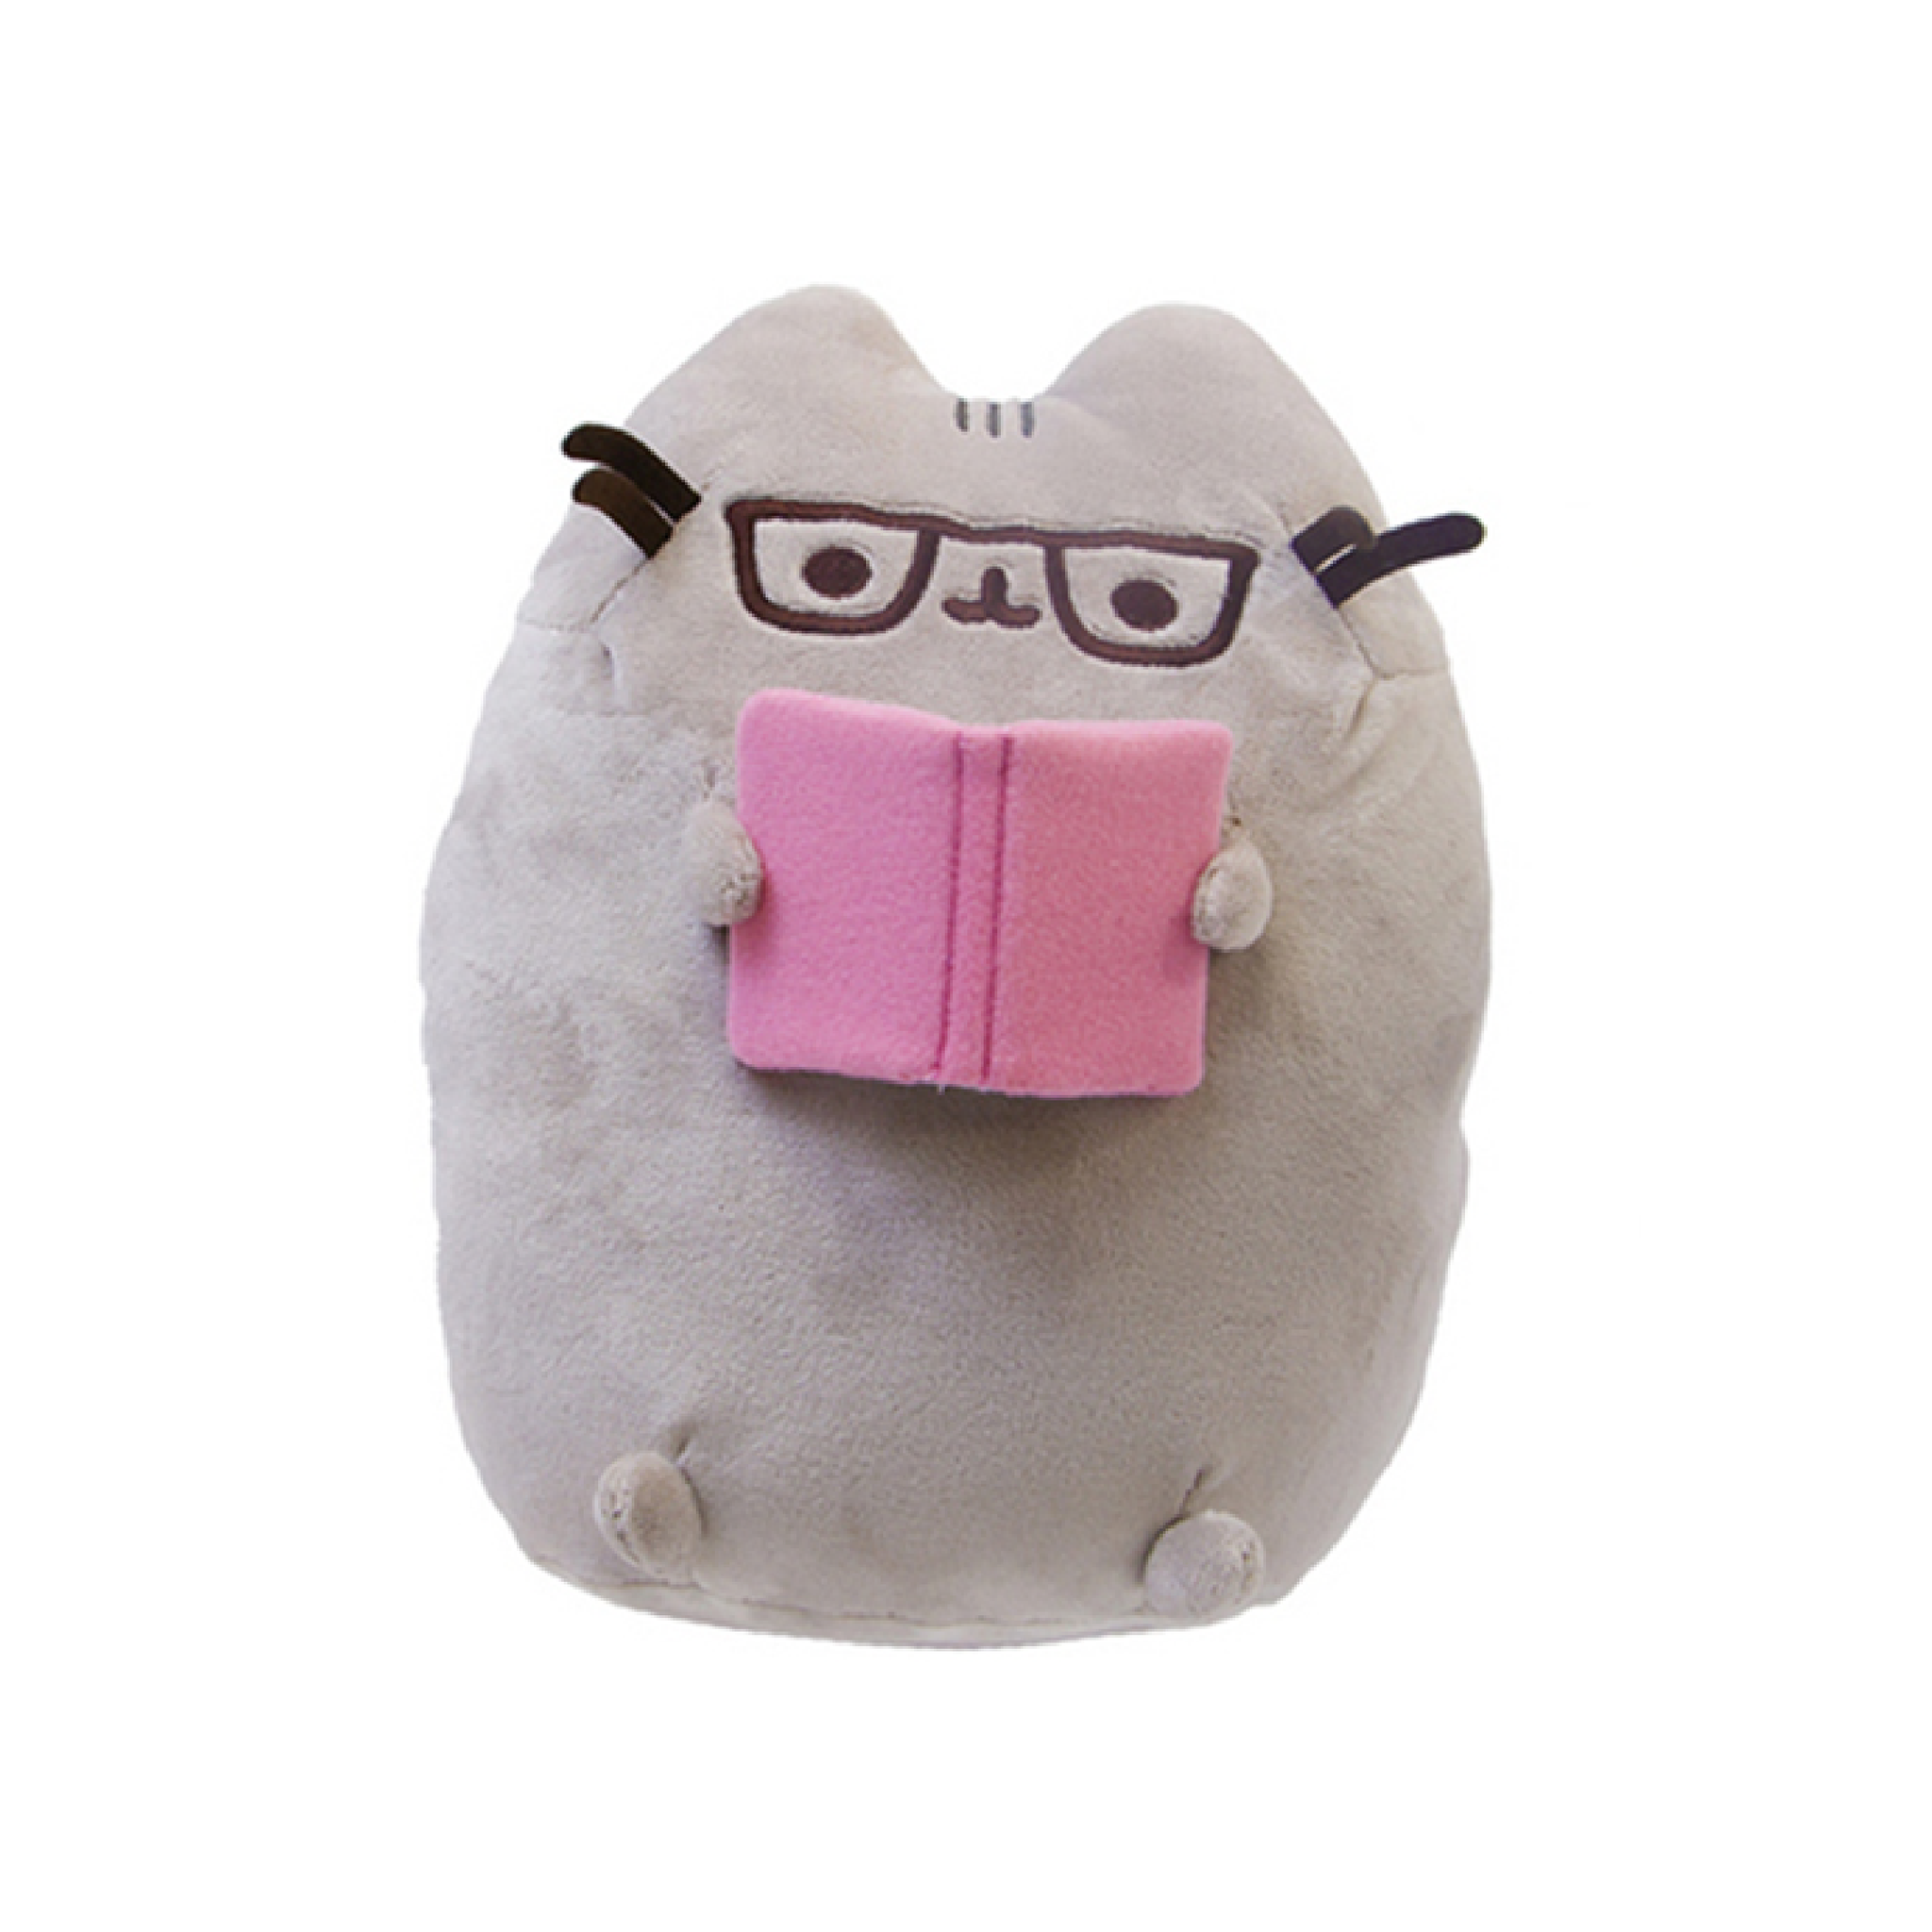 Gund Pusheen Reading Plush | Toy Galeria